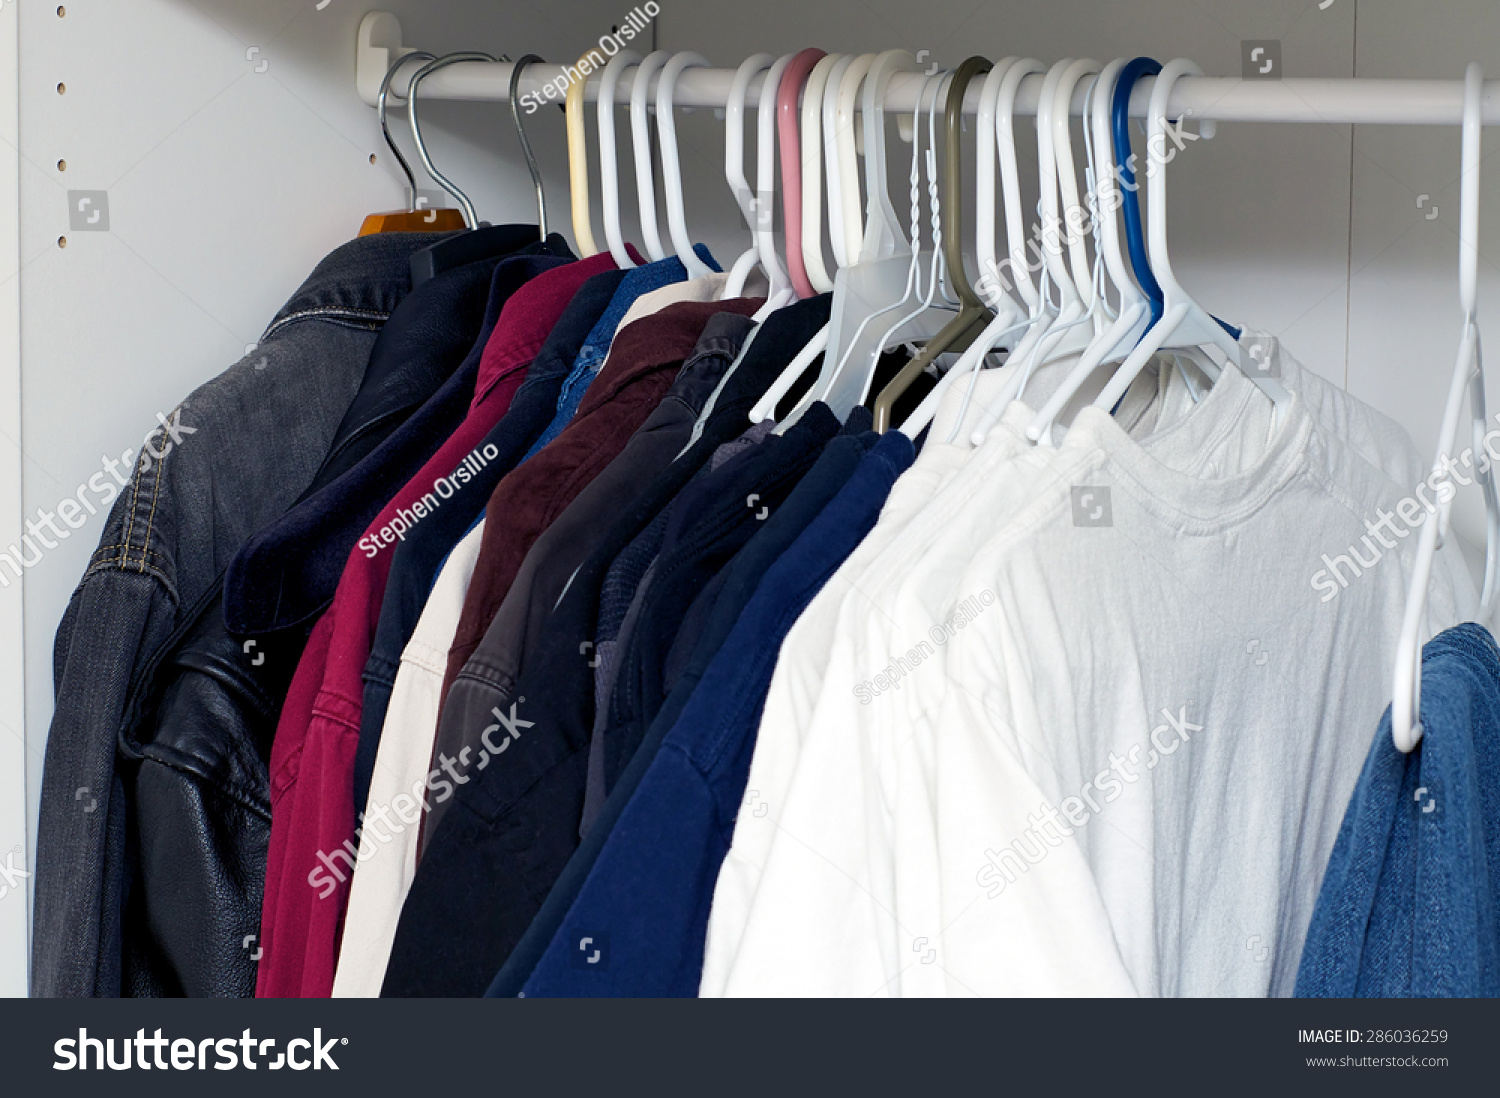 looking inside mans closet armoire full stock photo 286036259 shutterstock. Black Bedroom Furniture Sets. Home Design Ideas